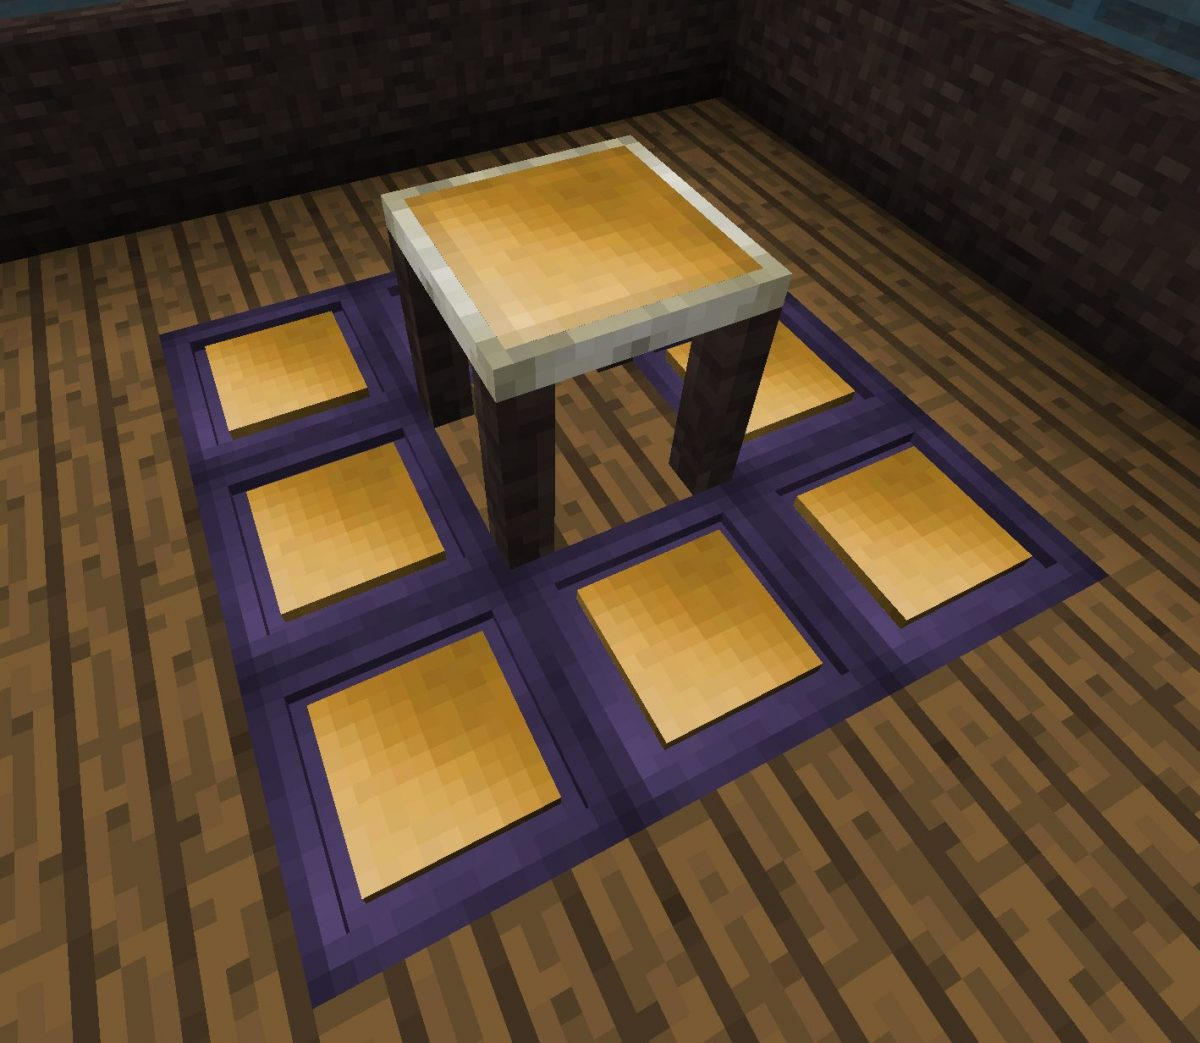 table mod minecraft chisels bits